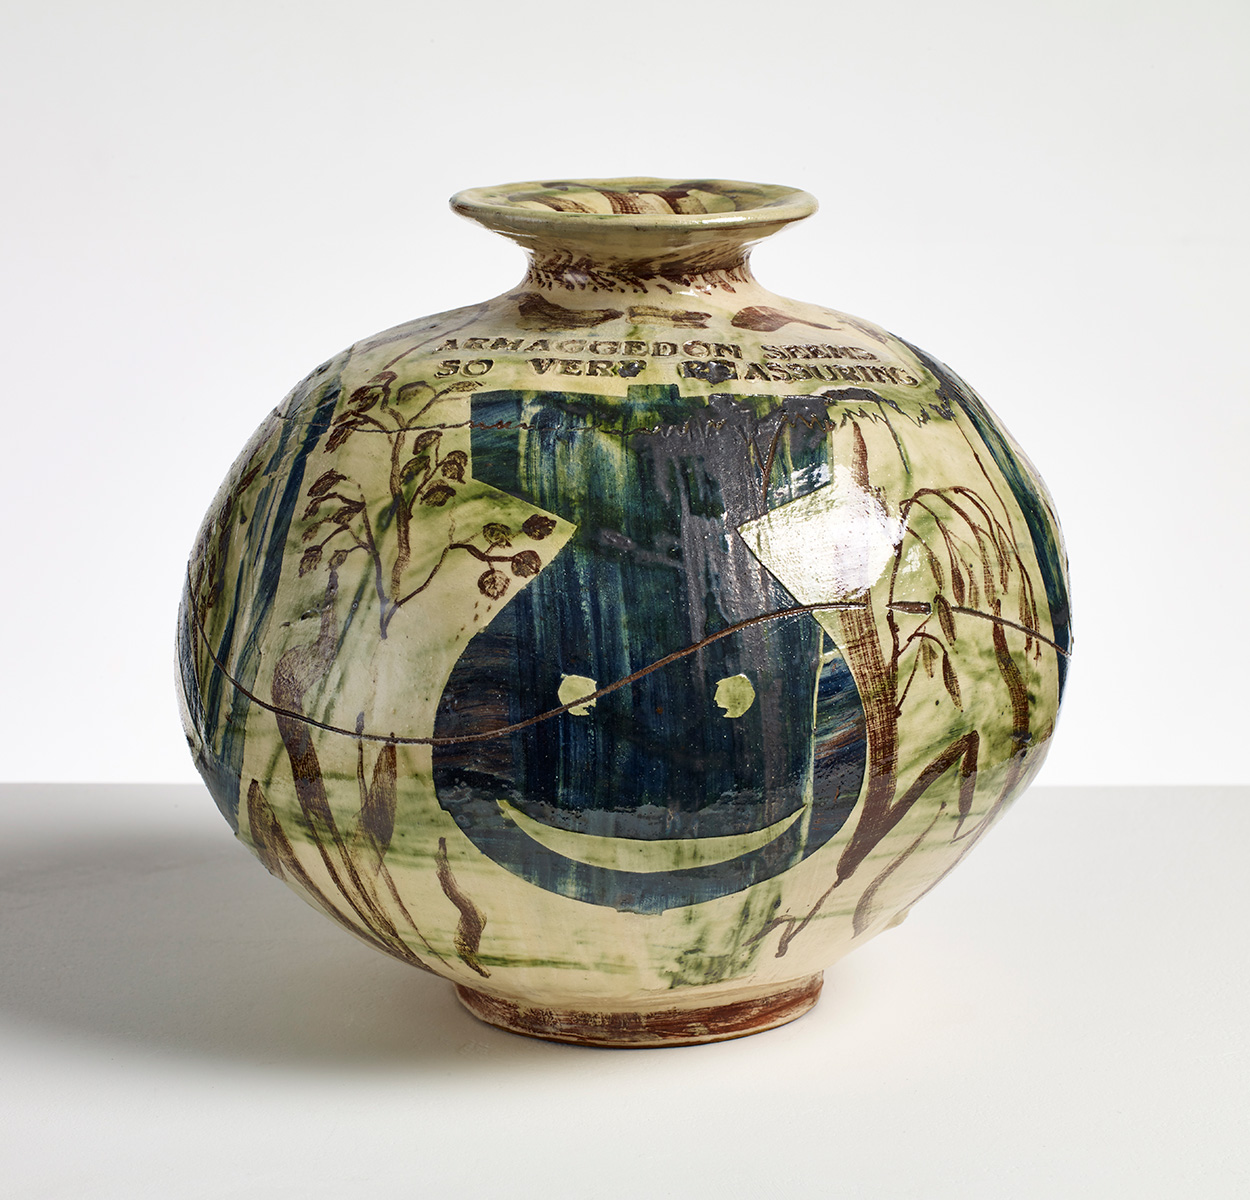 Armageddon Feels so Very Re-assuring by Grayson Perry 1988 Glazed ceramic Collection of the artist.